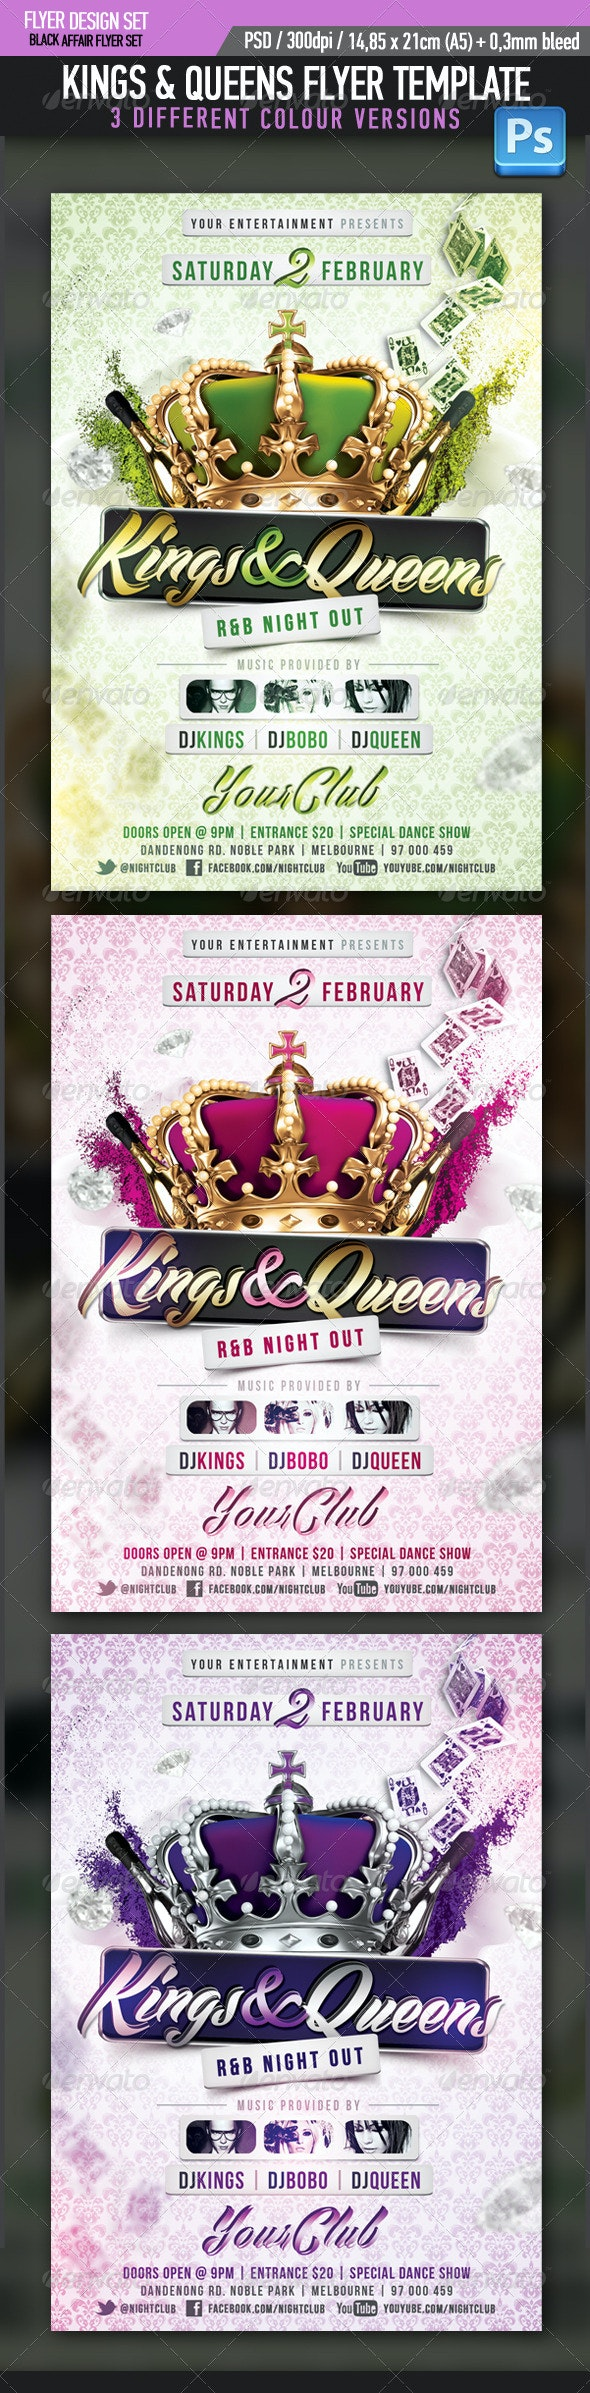 Kings Queens R&B Party Flyer Template - Clubs & Parties Events